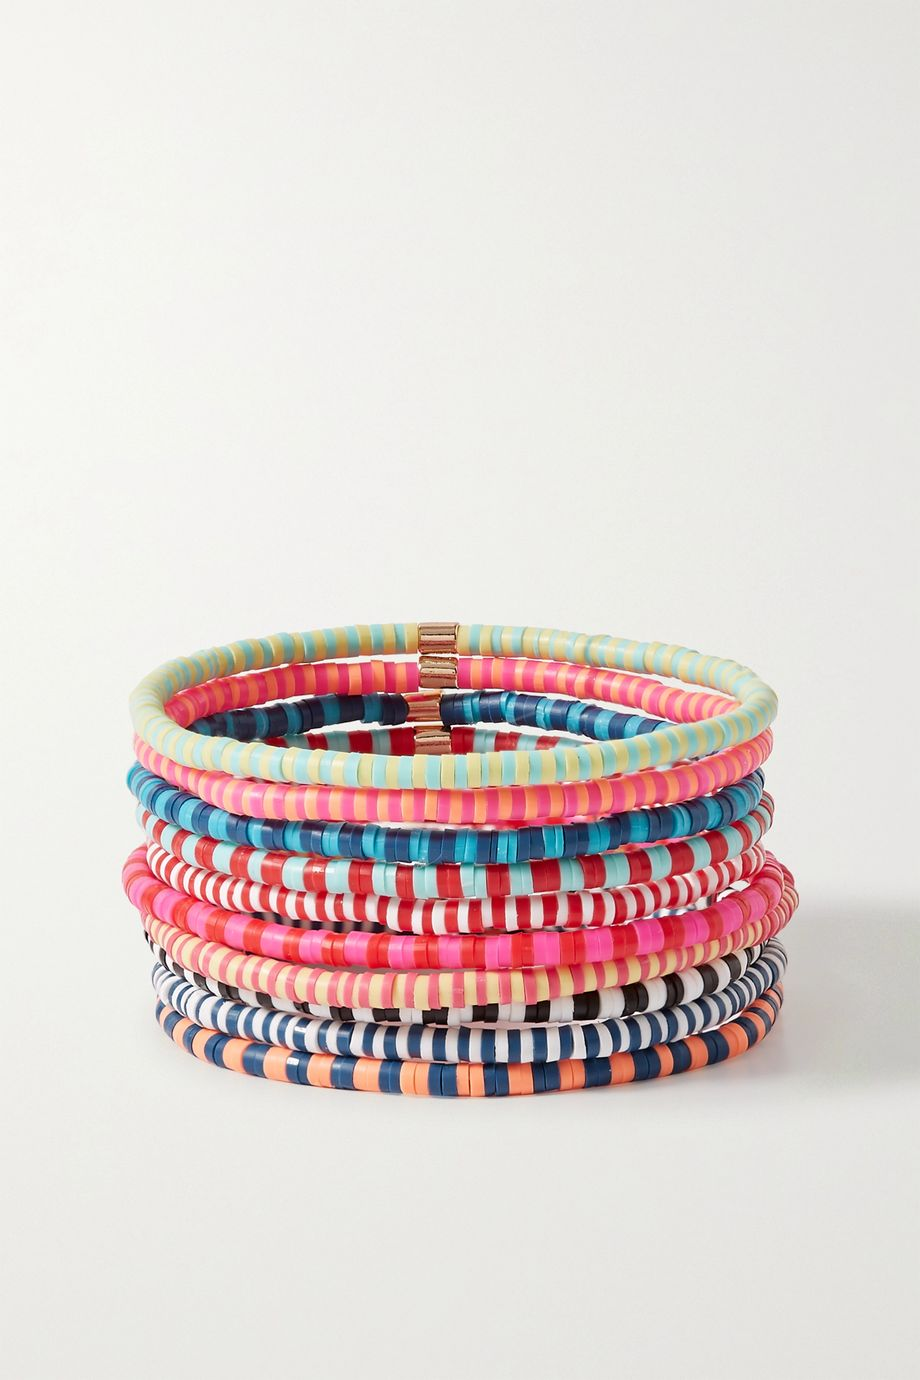 Roxanne Assoulin Happy Stripes set of ten beaded bracelets